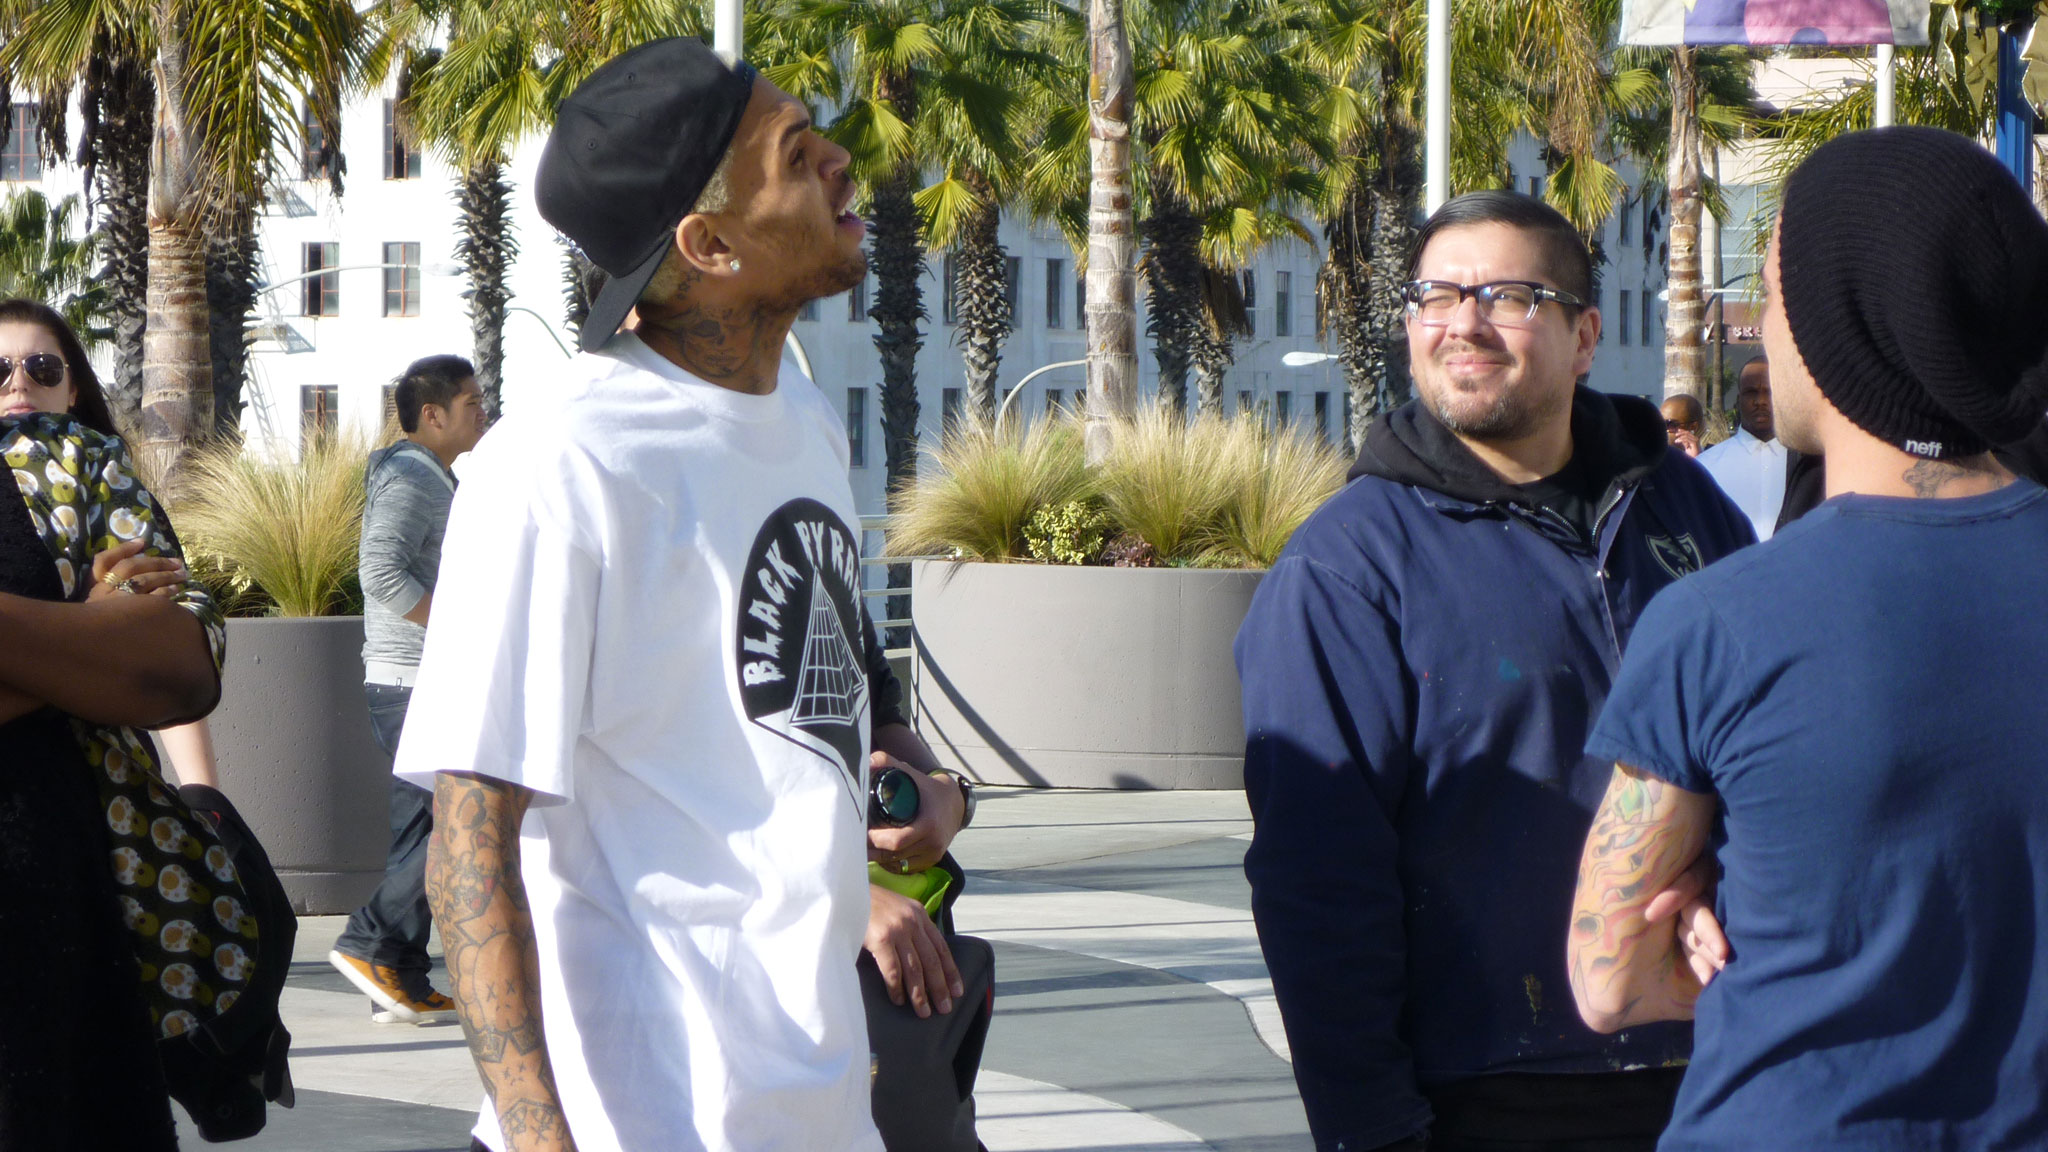 Rappers love skateboarding: Chris Brown arrives at Agenda.